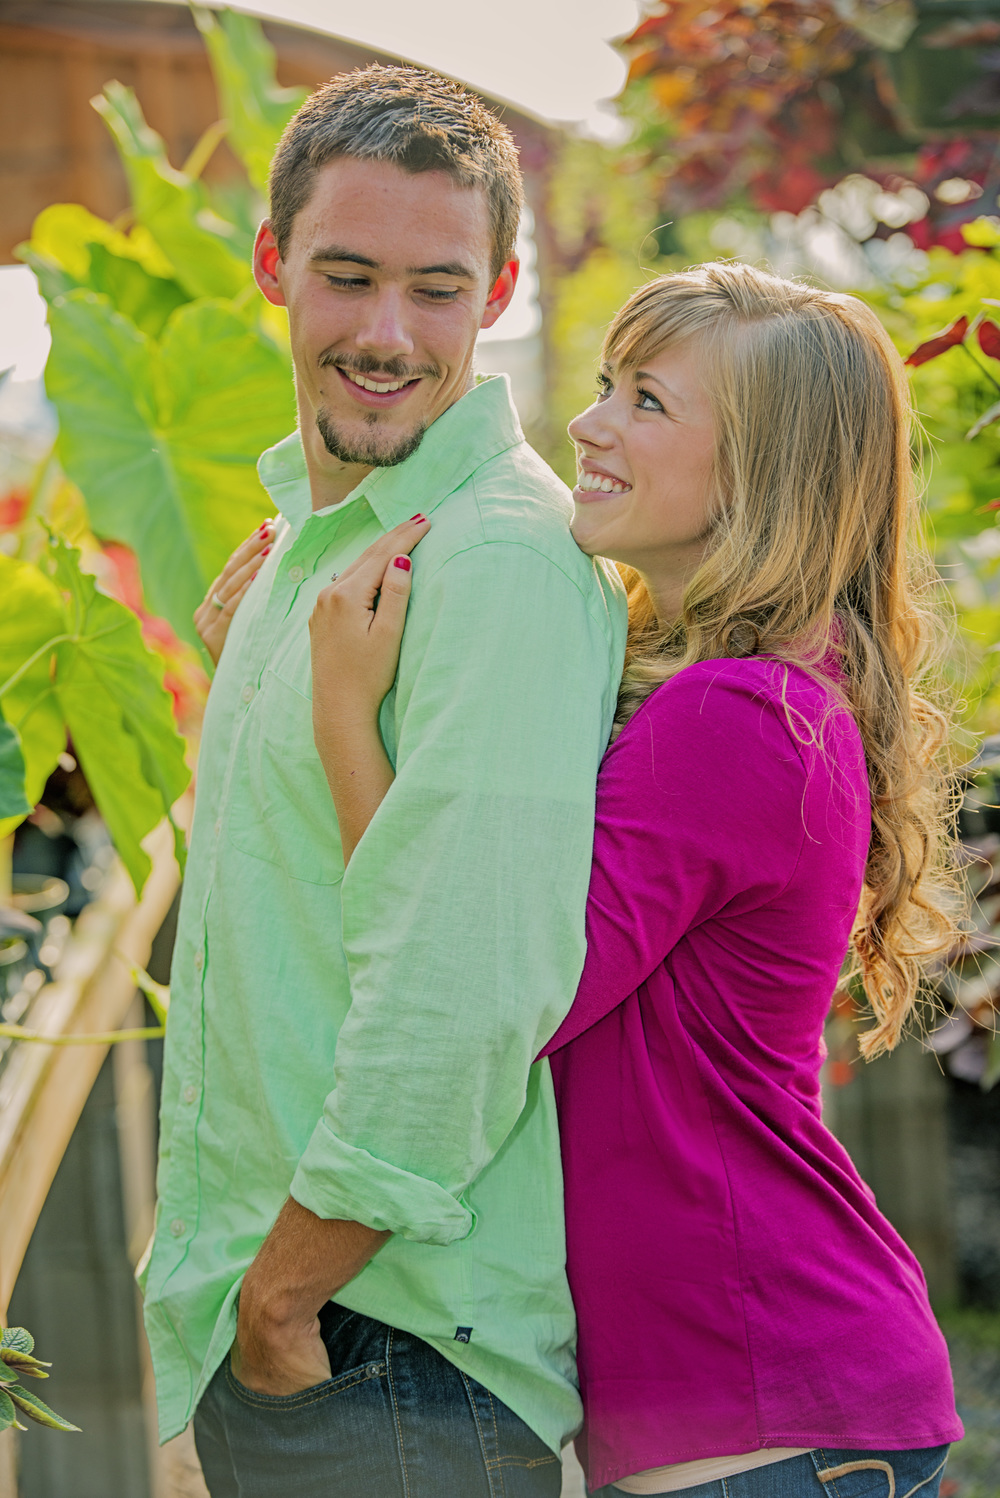 garden_dock_quilt_fun_engagement_session_lynchburg_va005.jpg